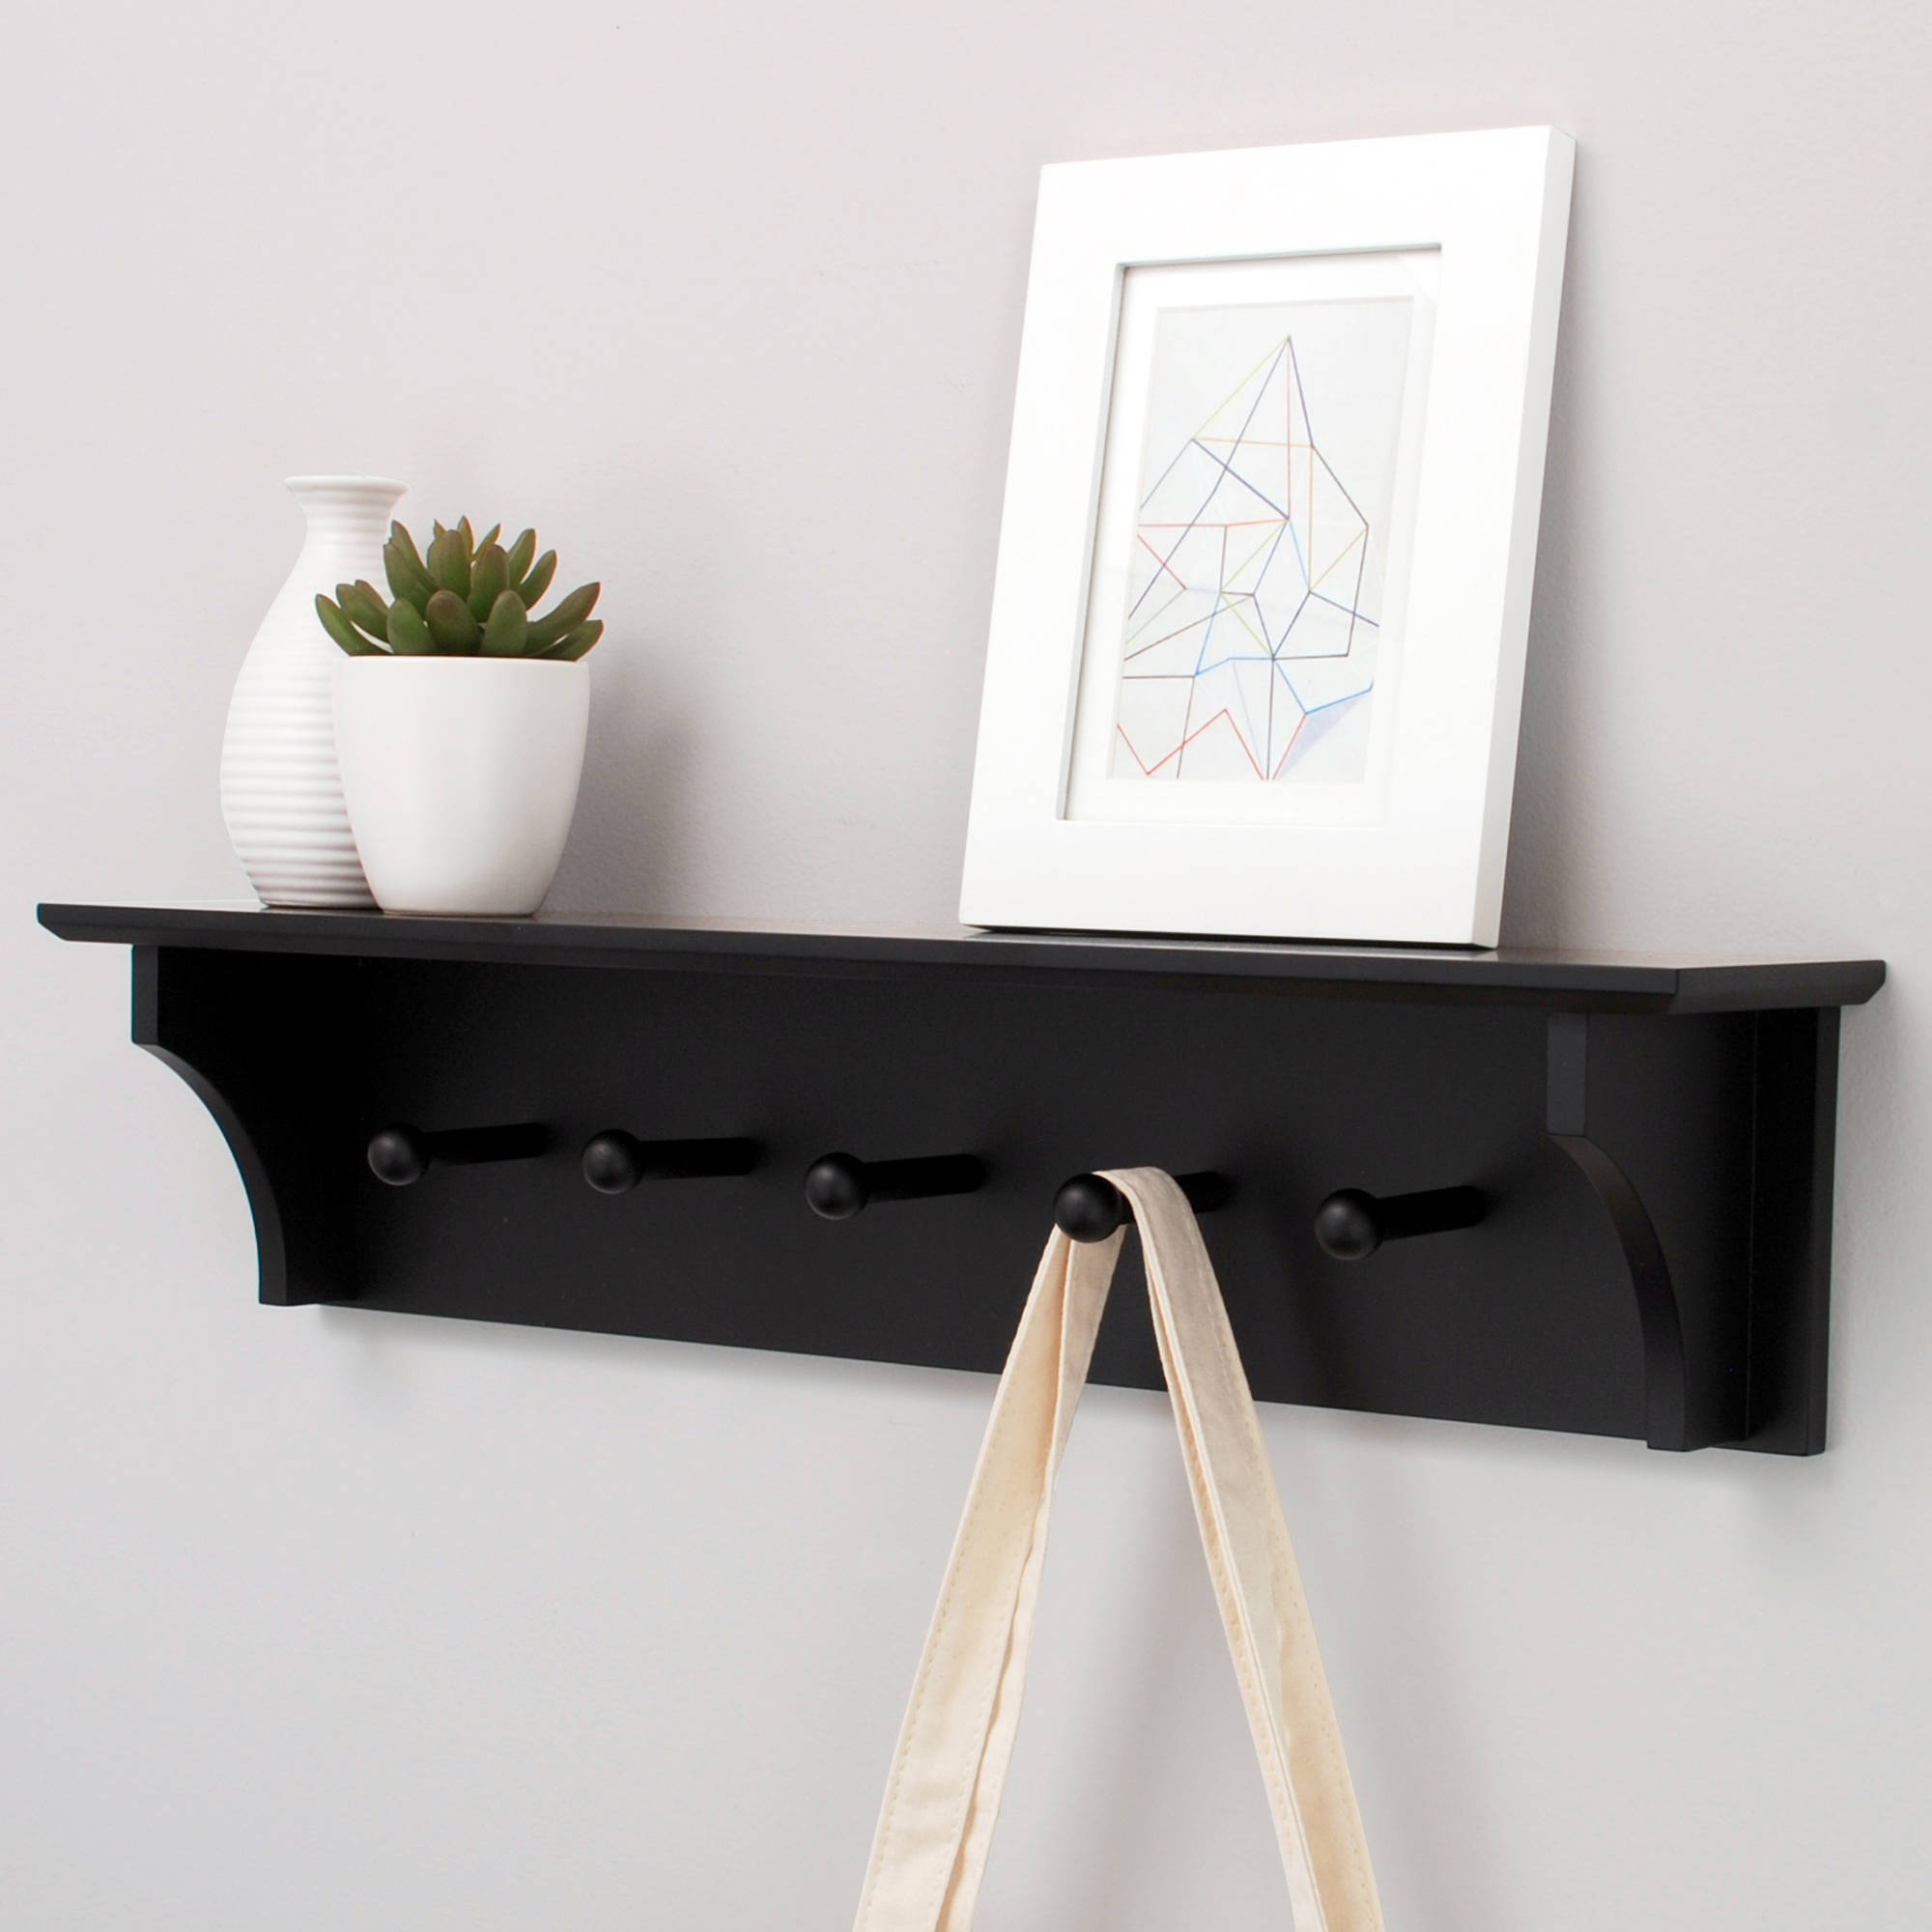 foster 24 wall shelf with 5 pegs walmart com rh walmart com white wall shelves with pegs white wall shelf with pegs